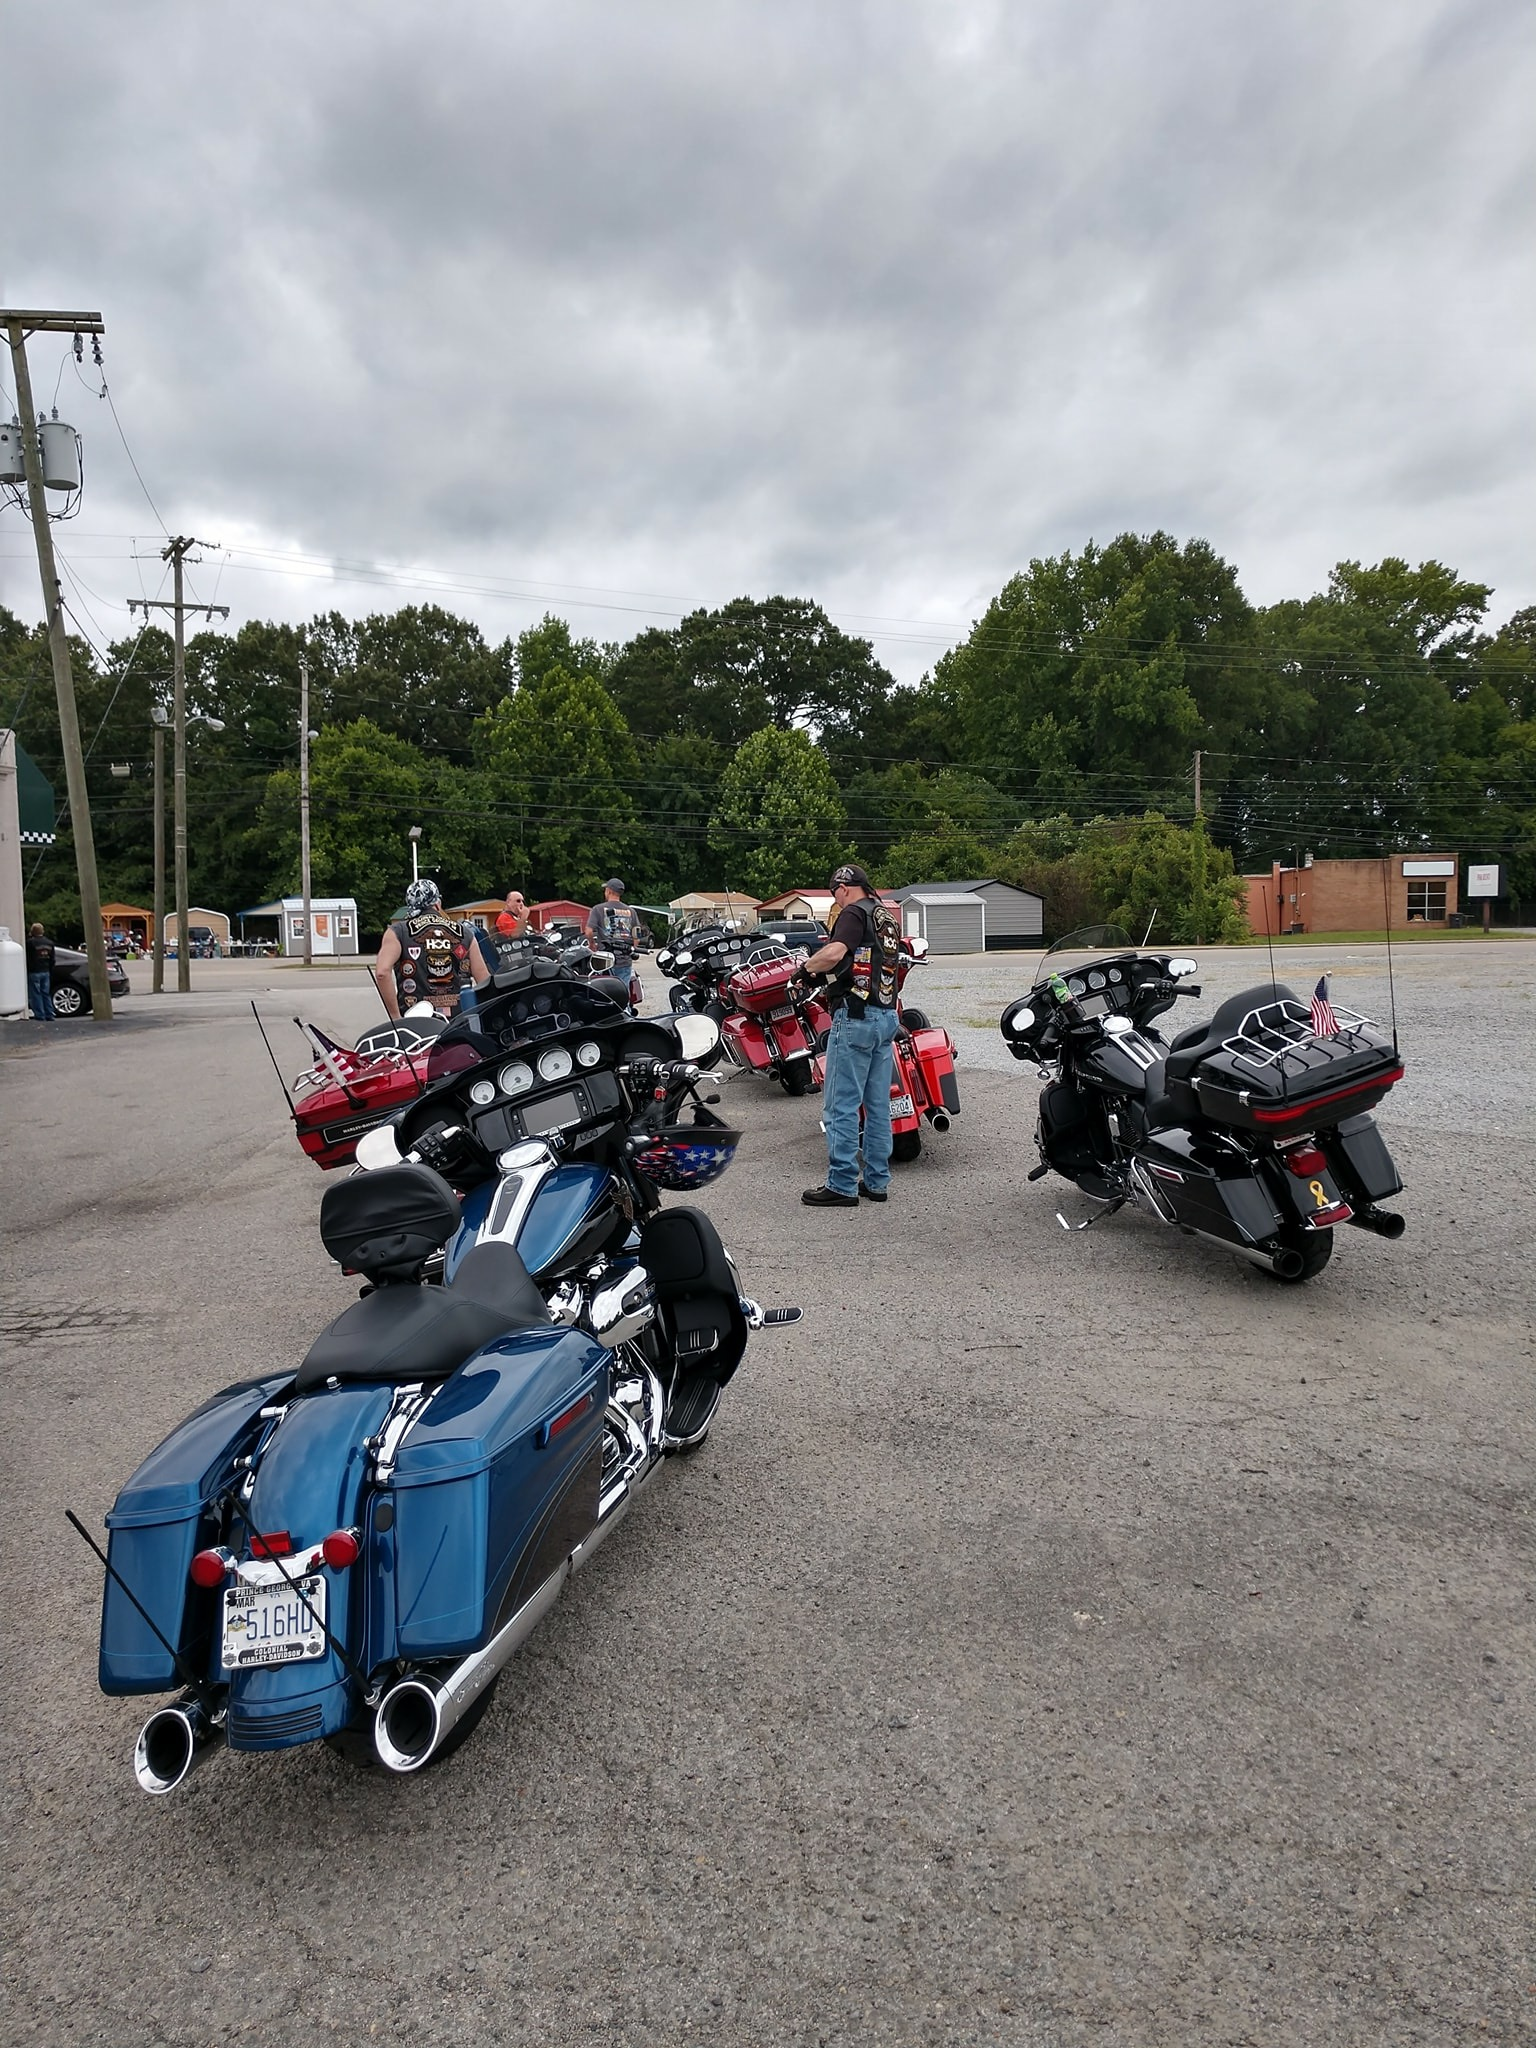 Lunch Stop - July 2018